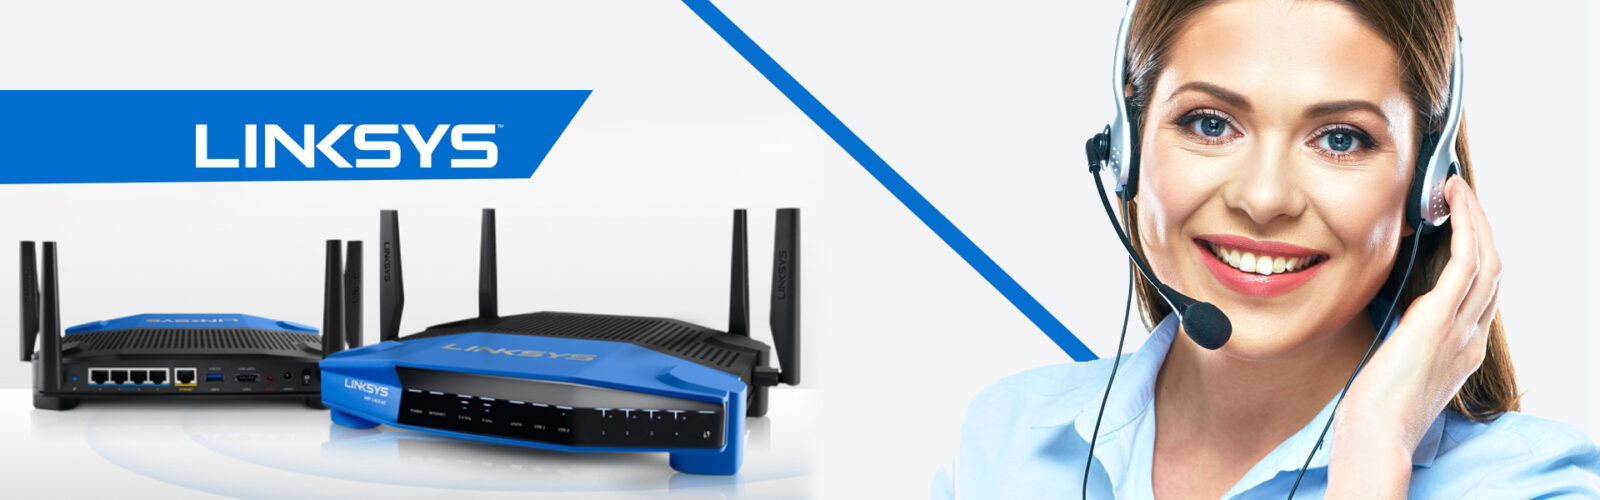 4 Ways to Use Linksys Tech Support